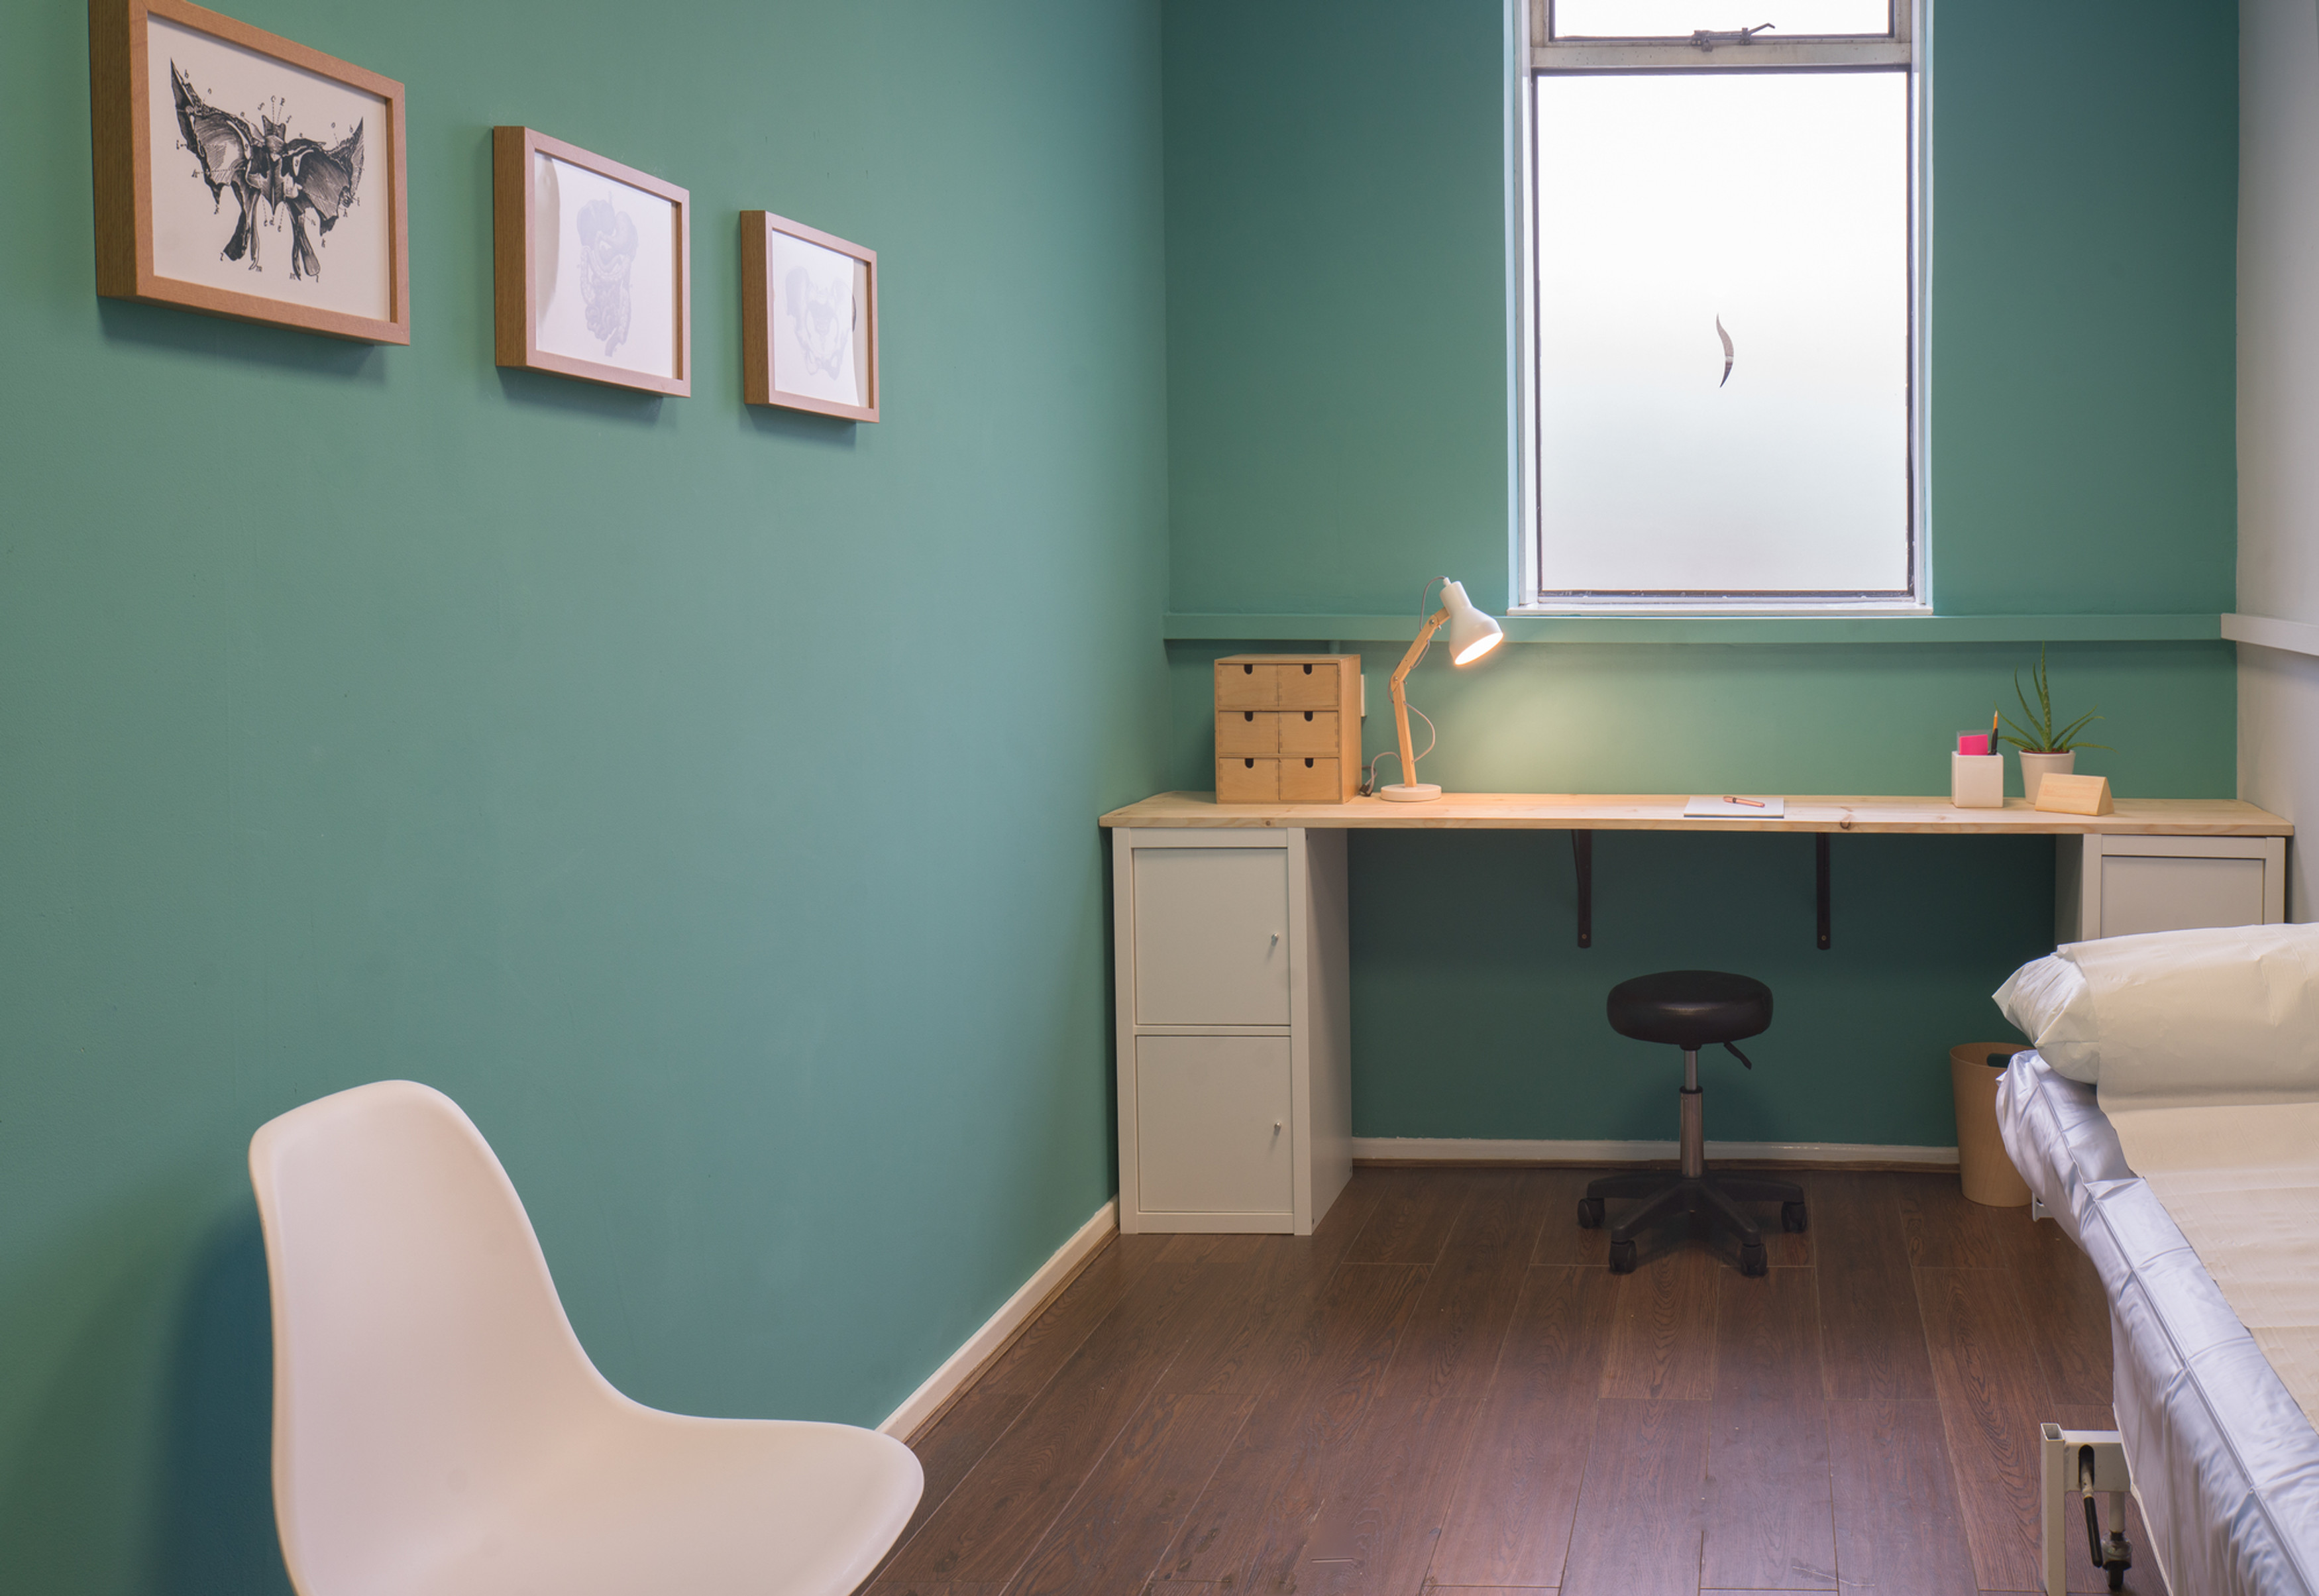 OSTEOPATHY INITIAL BOOKING